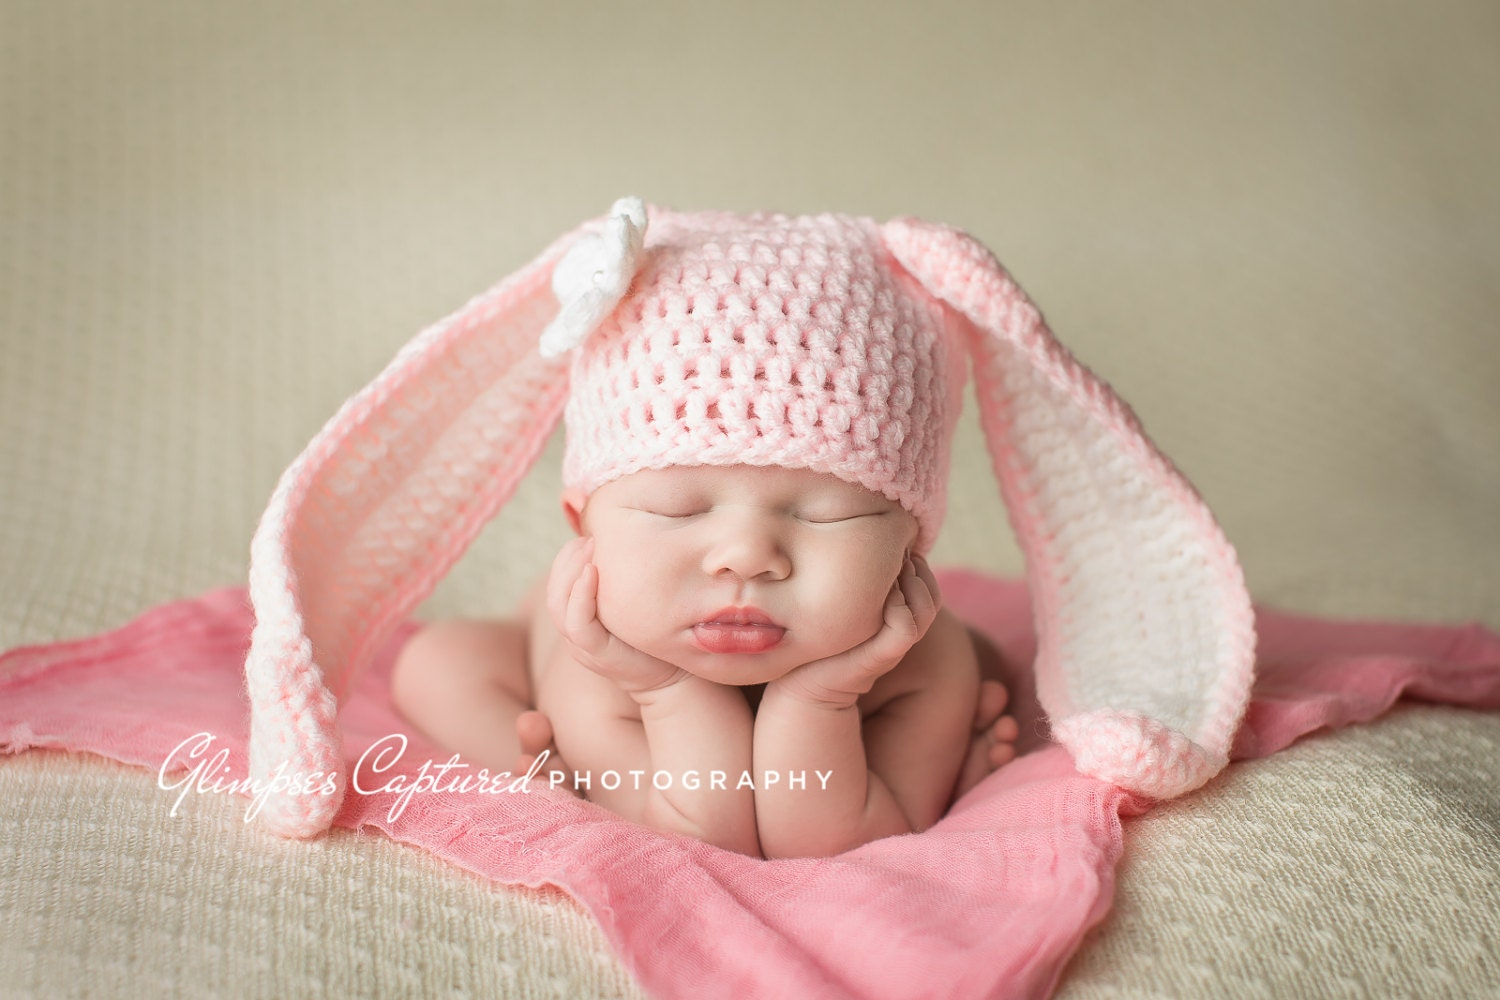 Free Crochet Pattern For Baby Floppy Hats : Crochet Bunny Hat Crochet Baby Bunny Hat Bunny Photo Prop